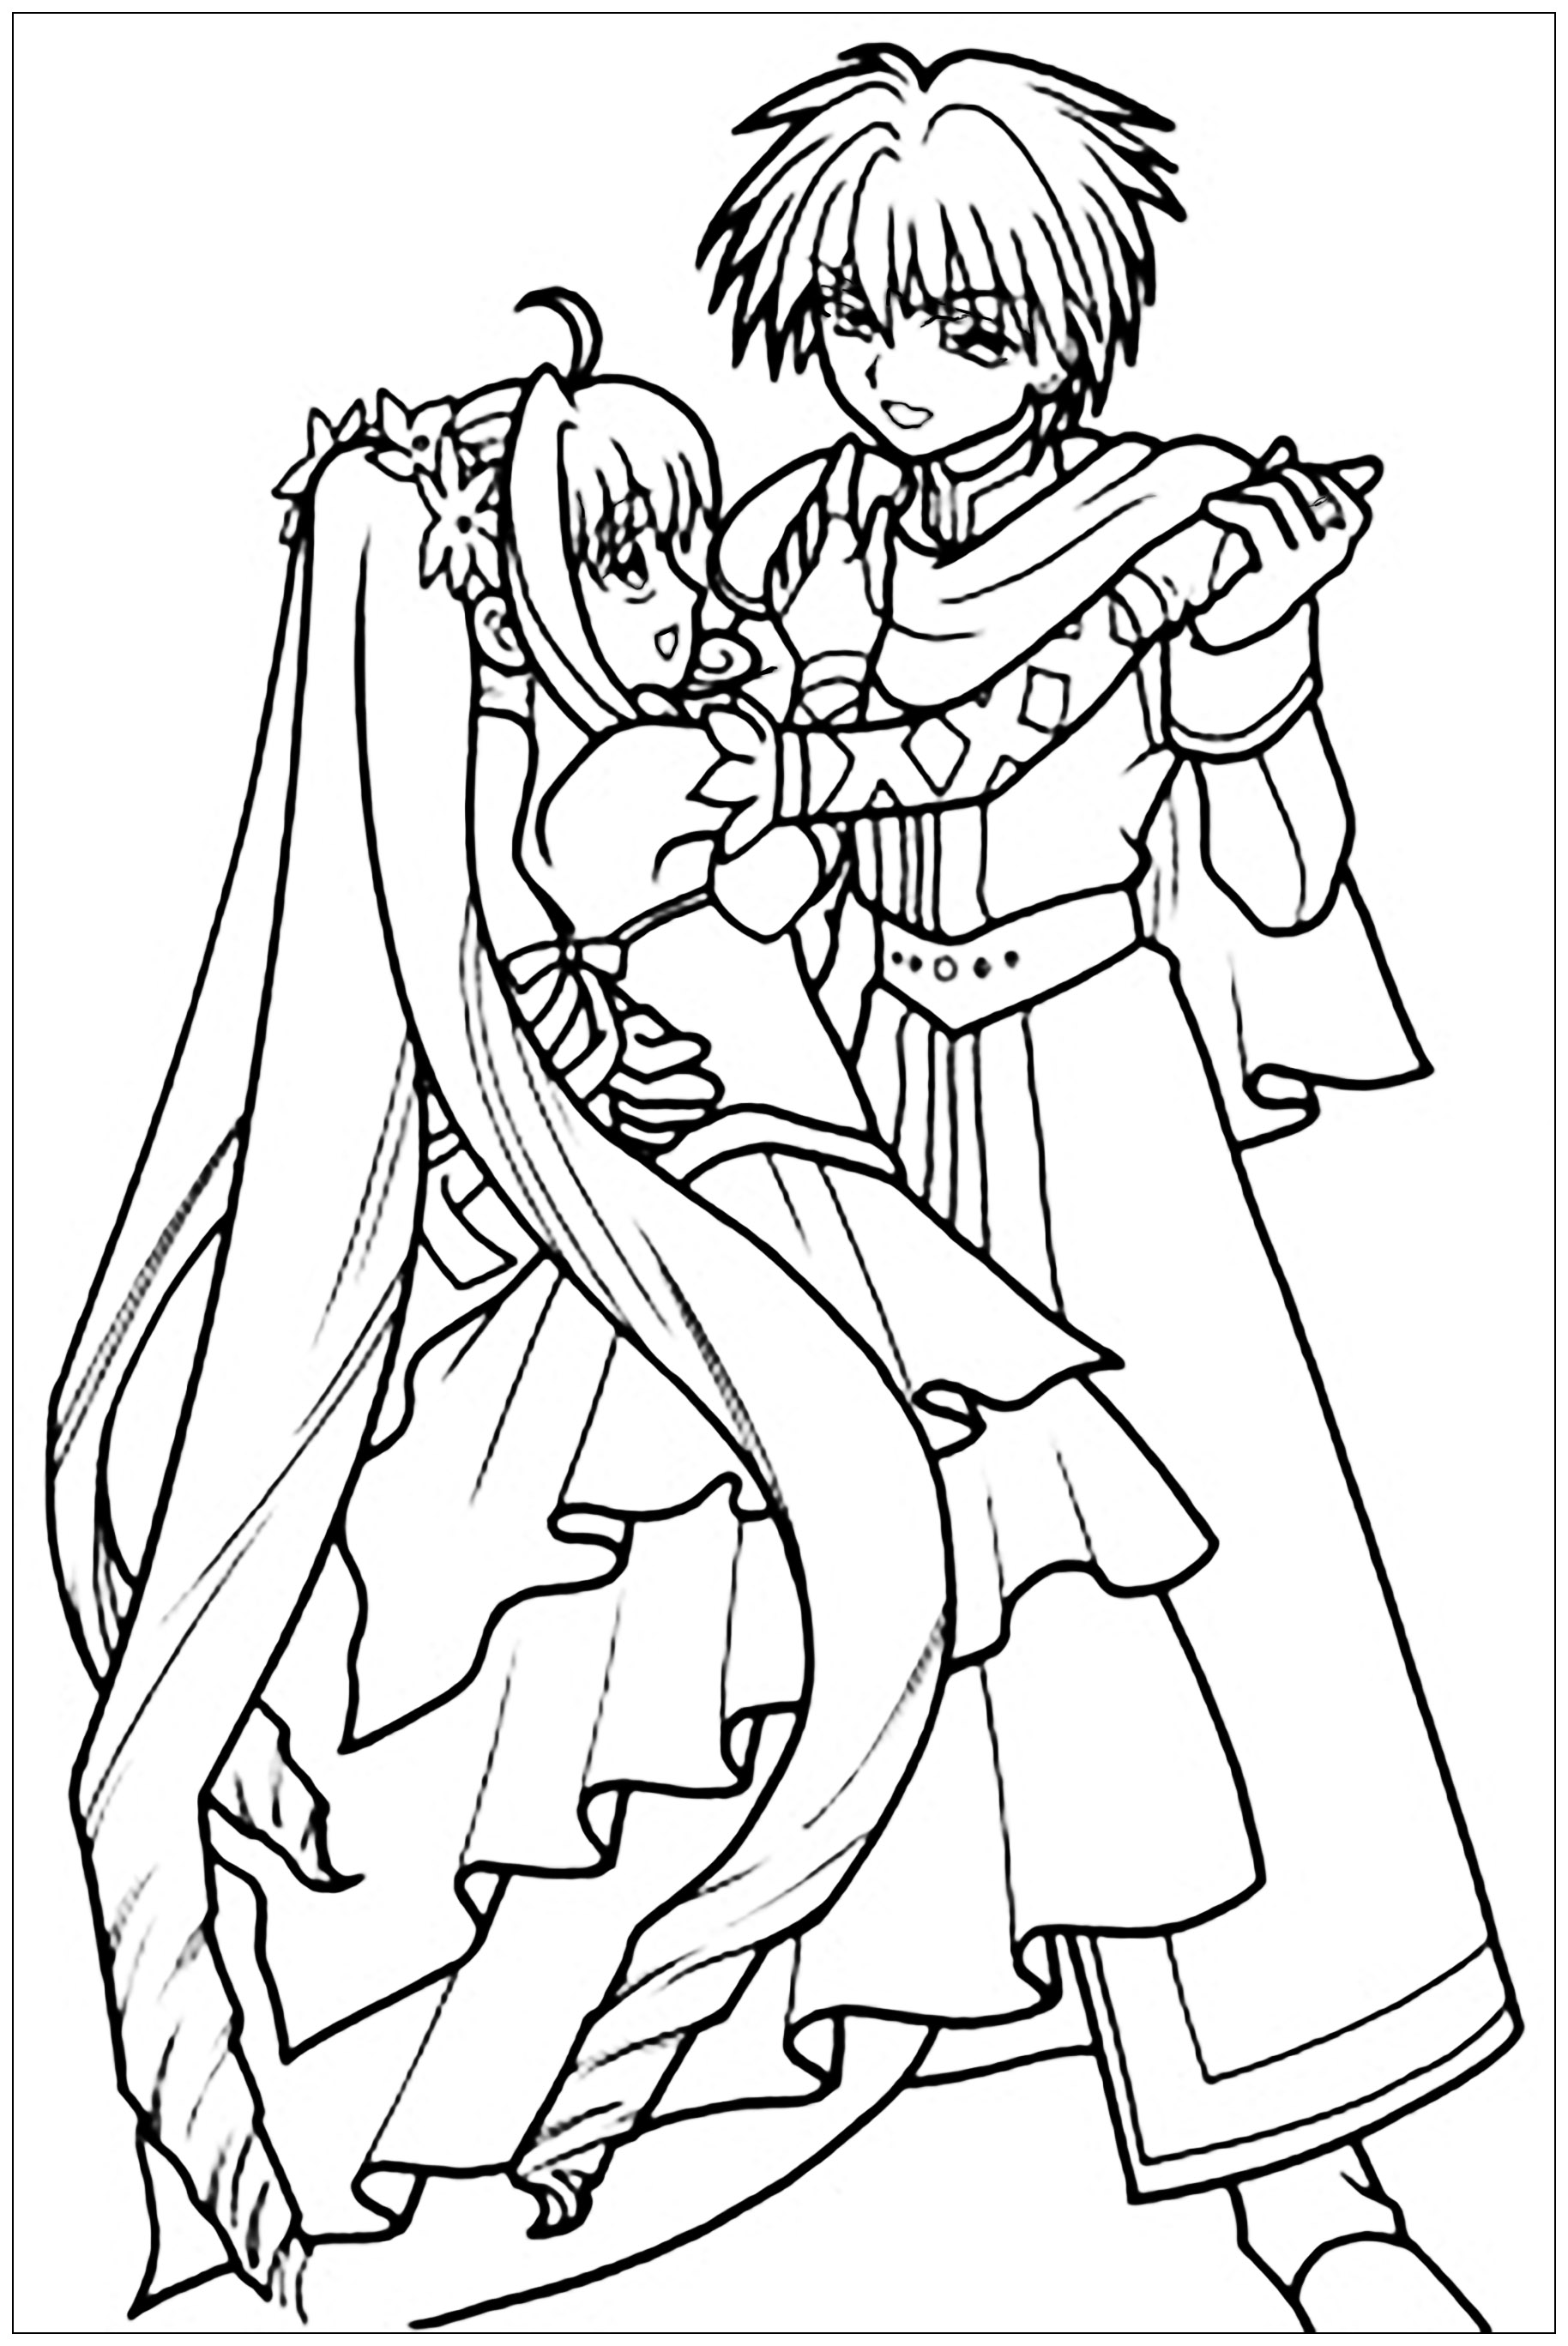 manga anime coloring pages anime coloring pages best coloring pages for kids manga anime pages coloring